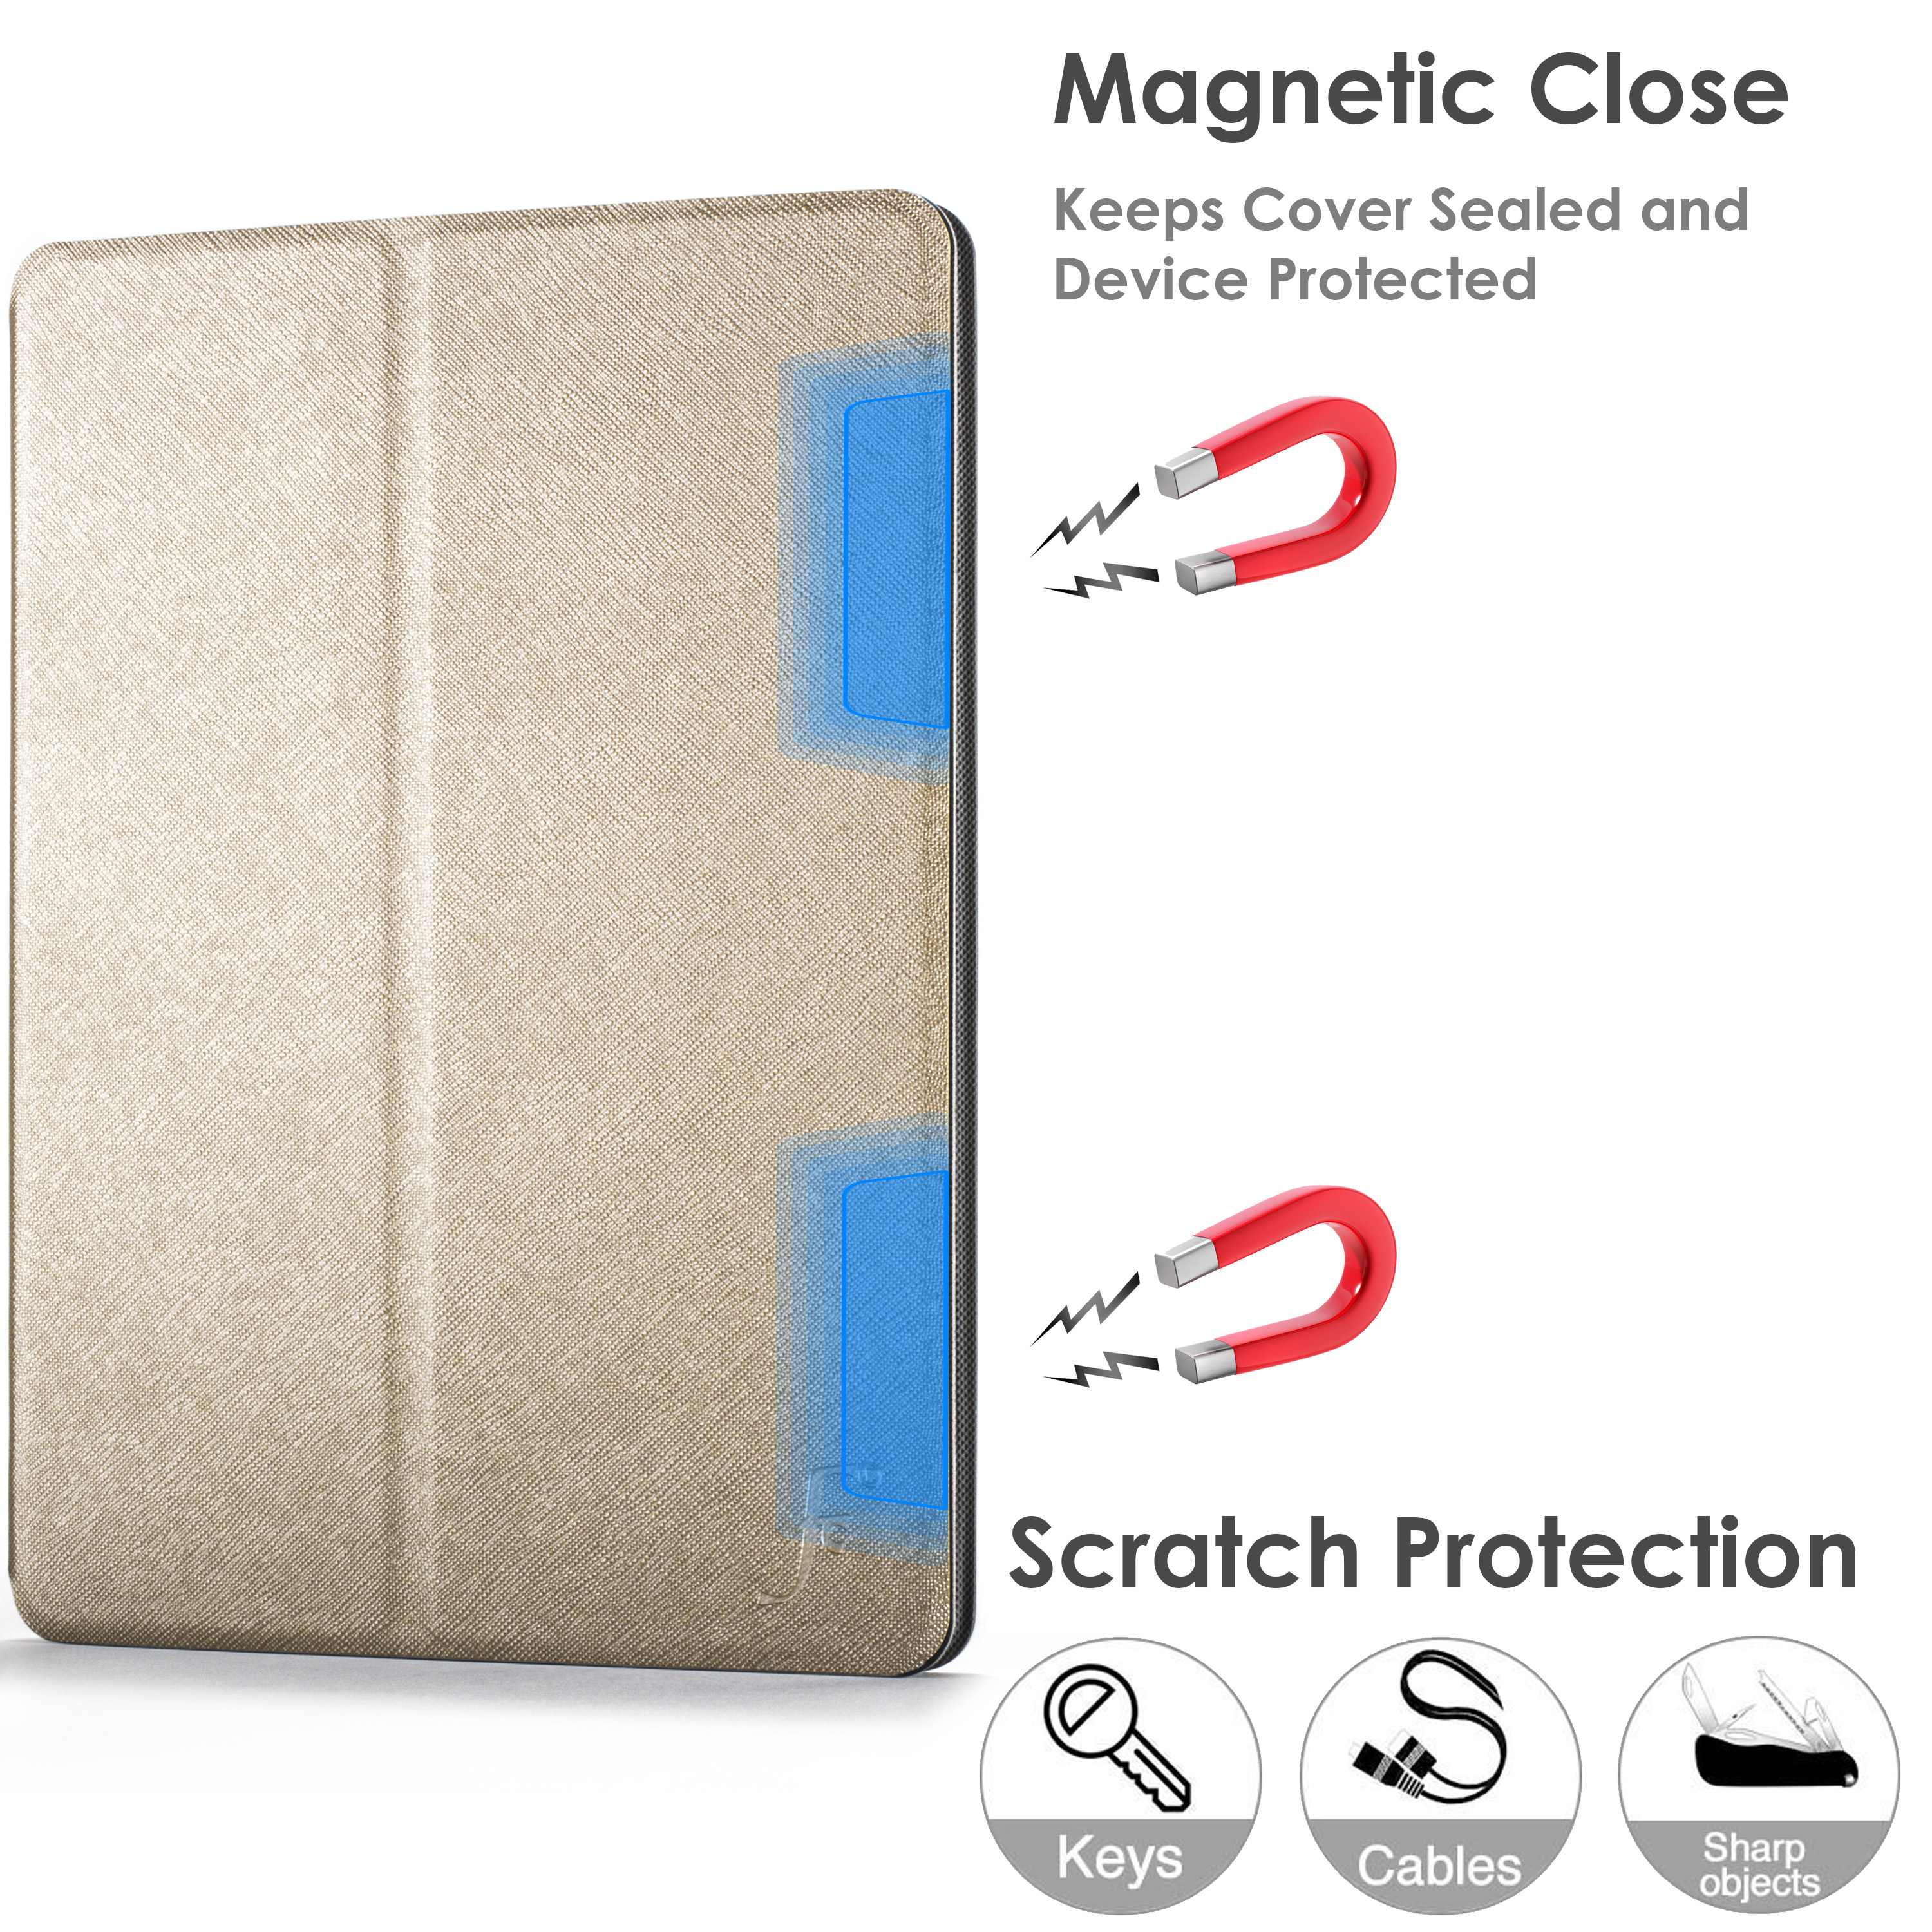 miniature 23 - Samsung Galaxy Tab A 10.1 2019 Étui Magnétique Protection & Support + Stylet